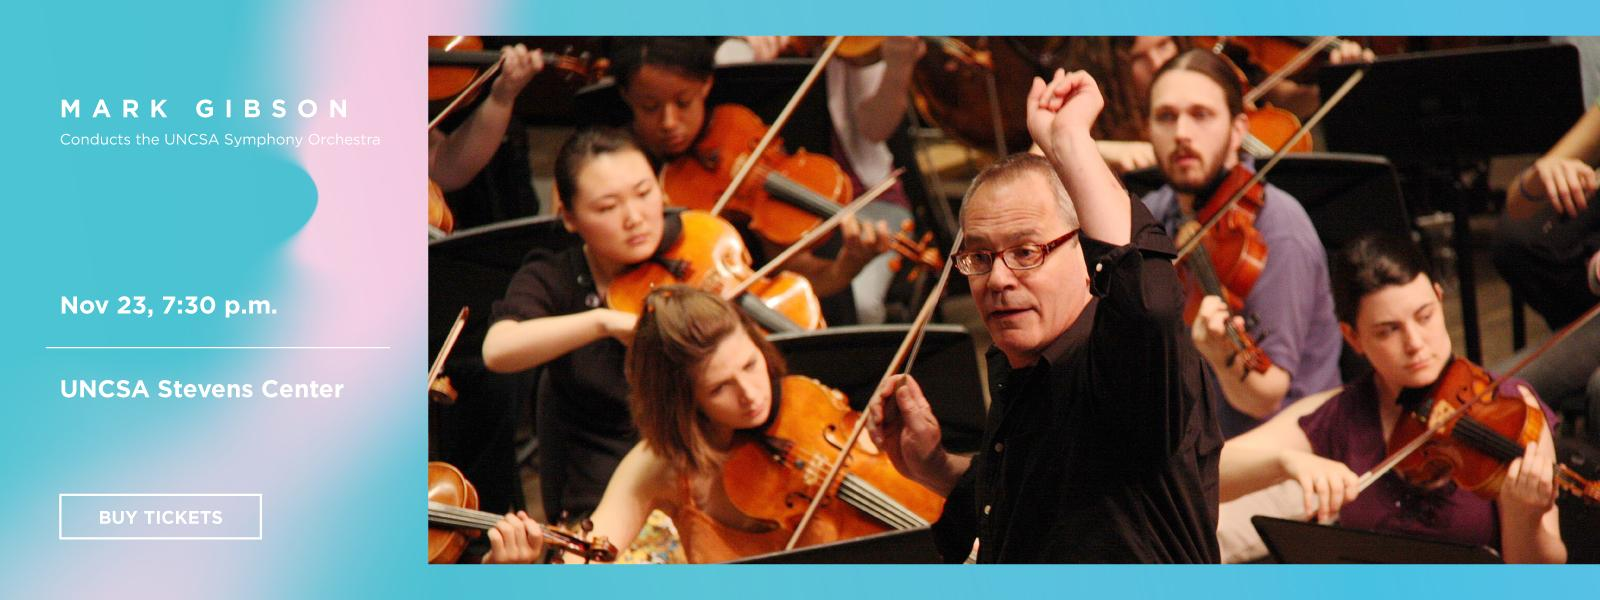 Maestro Mark Gibson leads the UNCSA Symphony Orchestra.>>BUY TICKETS